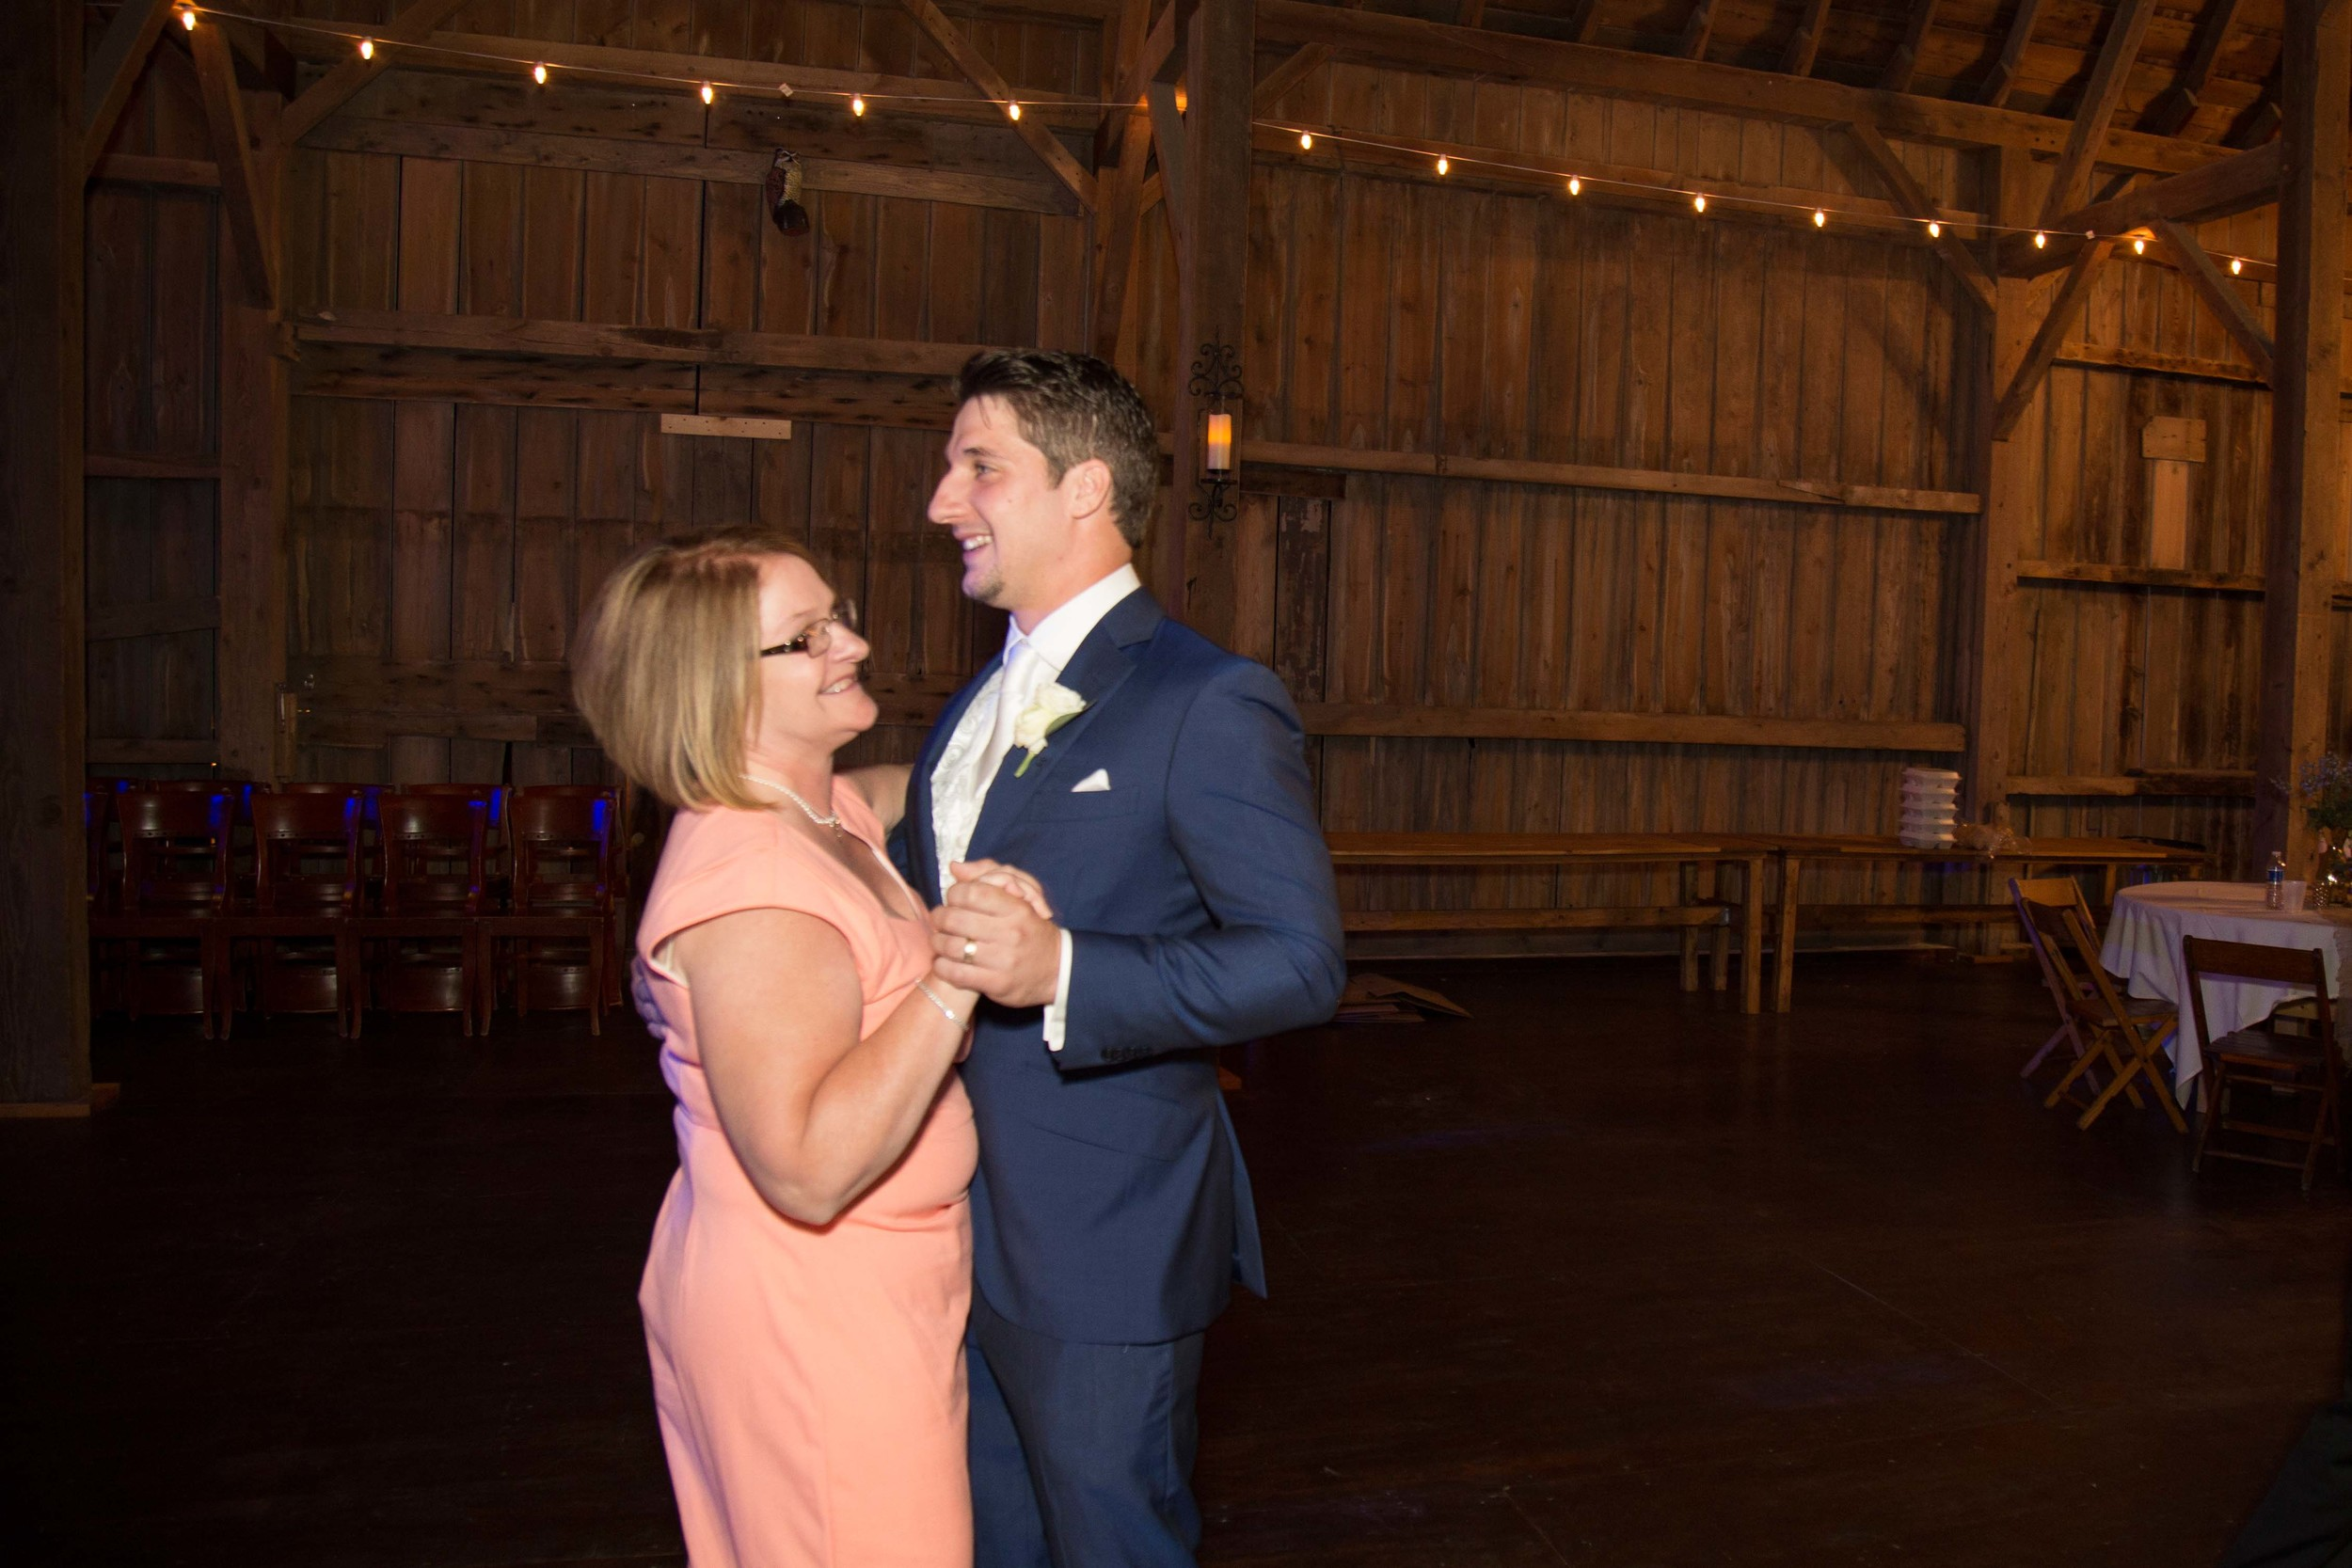 6_6-Barn_Dance_Mother_Son_5576 2.jpg